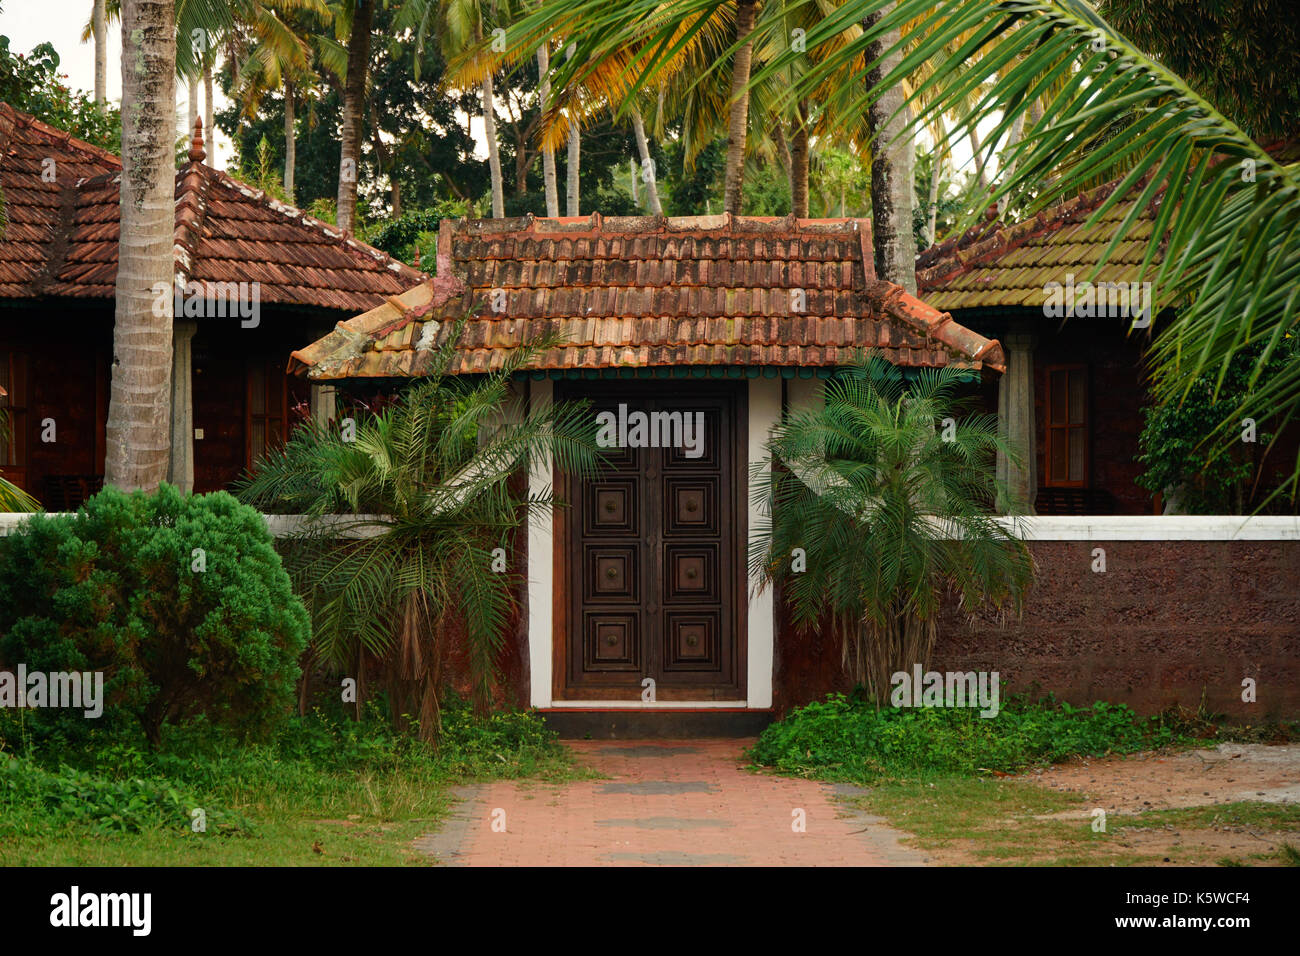 Old house kerala stock photos old house kerala stock for New model veedu photos